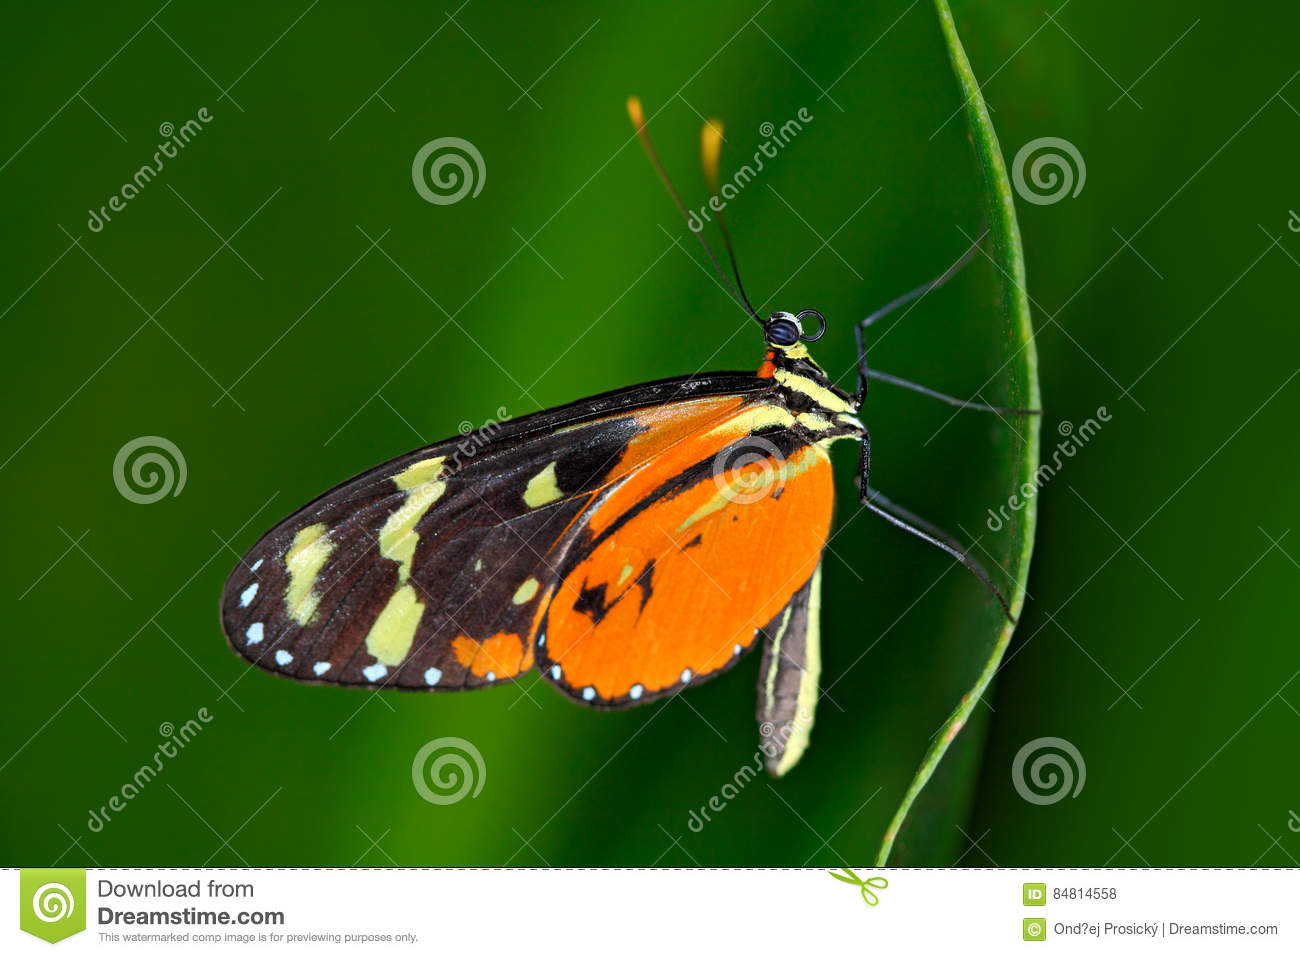 Butterfly Heliconius Hacale zuleikas, in nature habitat. Nice insect from Costa Rica in the green forest. Butterfly sitting on the